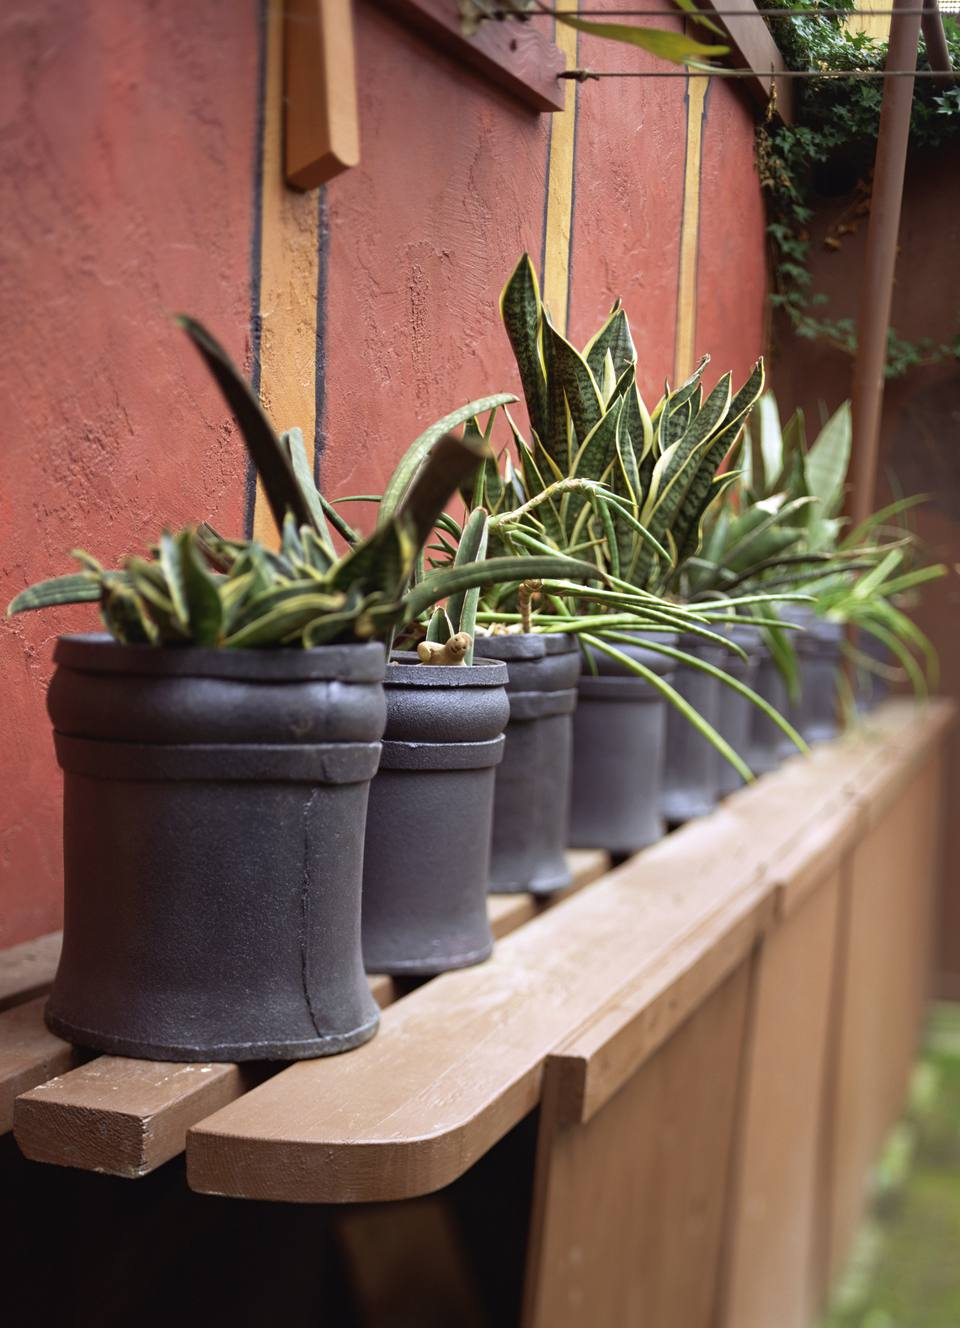 Row of potted plants in black pots